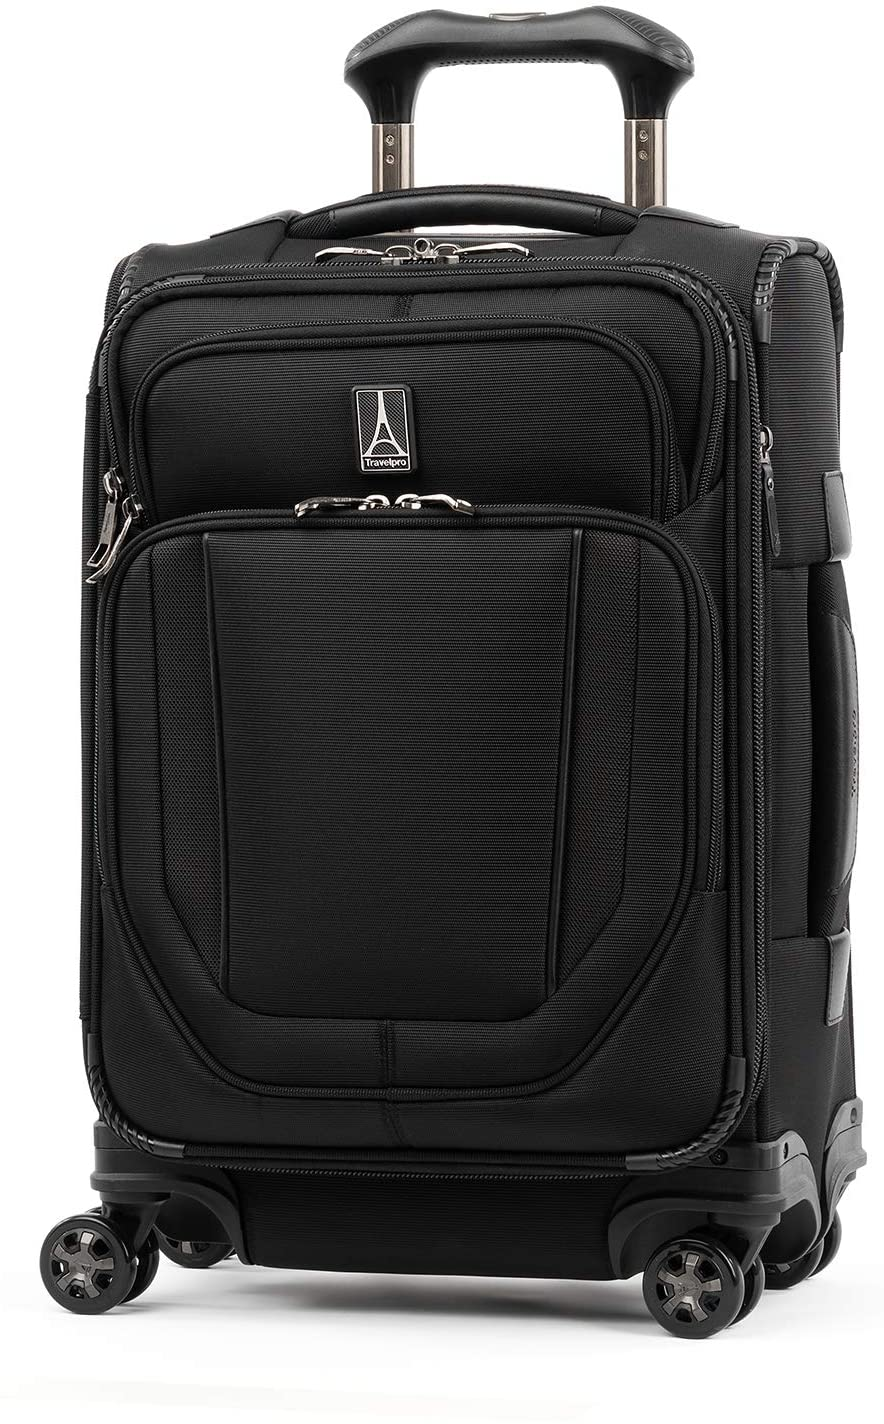 Travelpro Crew Versapack-Softside Expandable Spinner Wheel Luggage, Jet Black